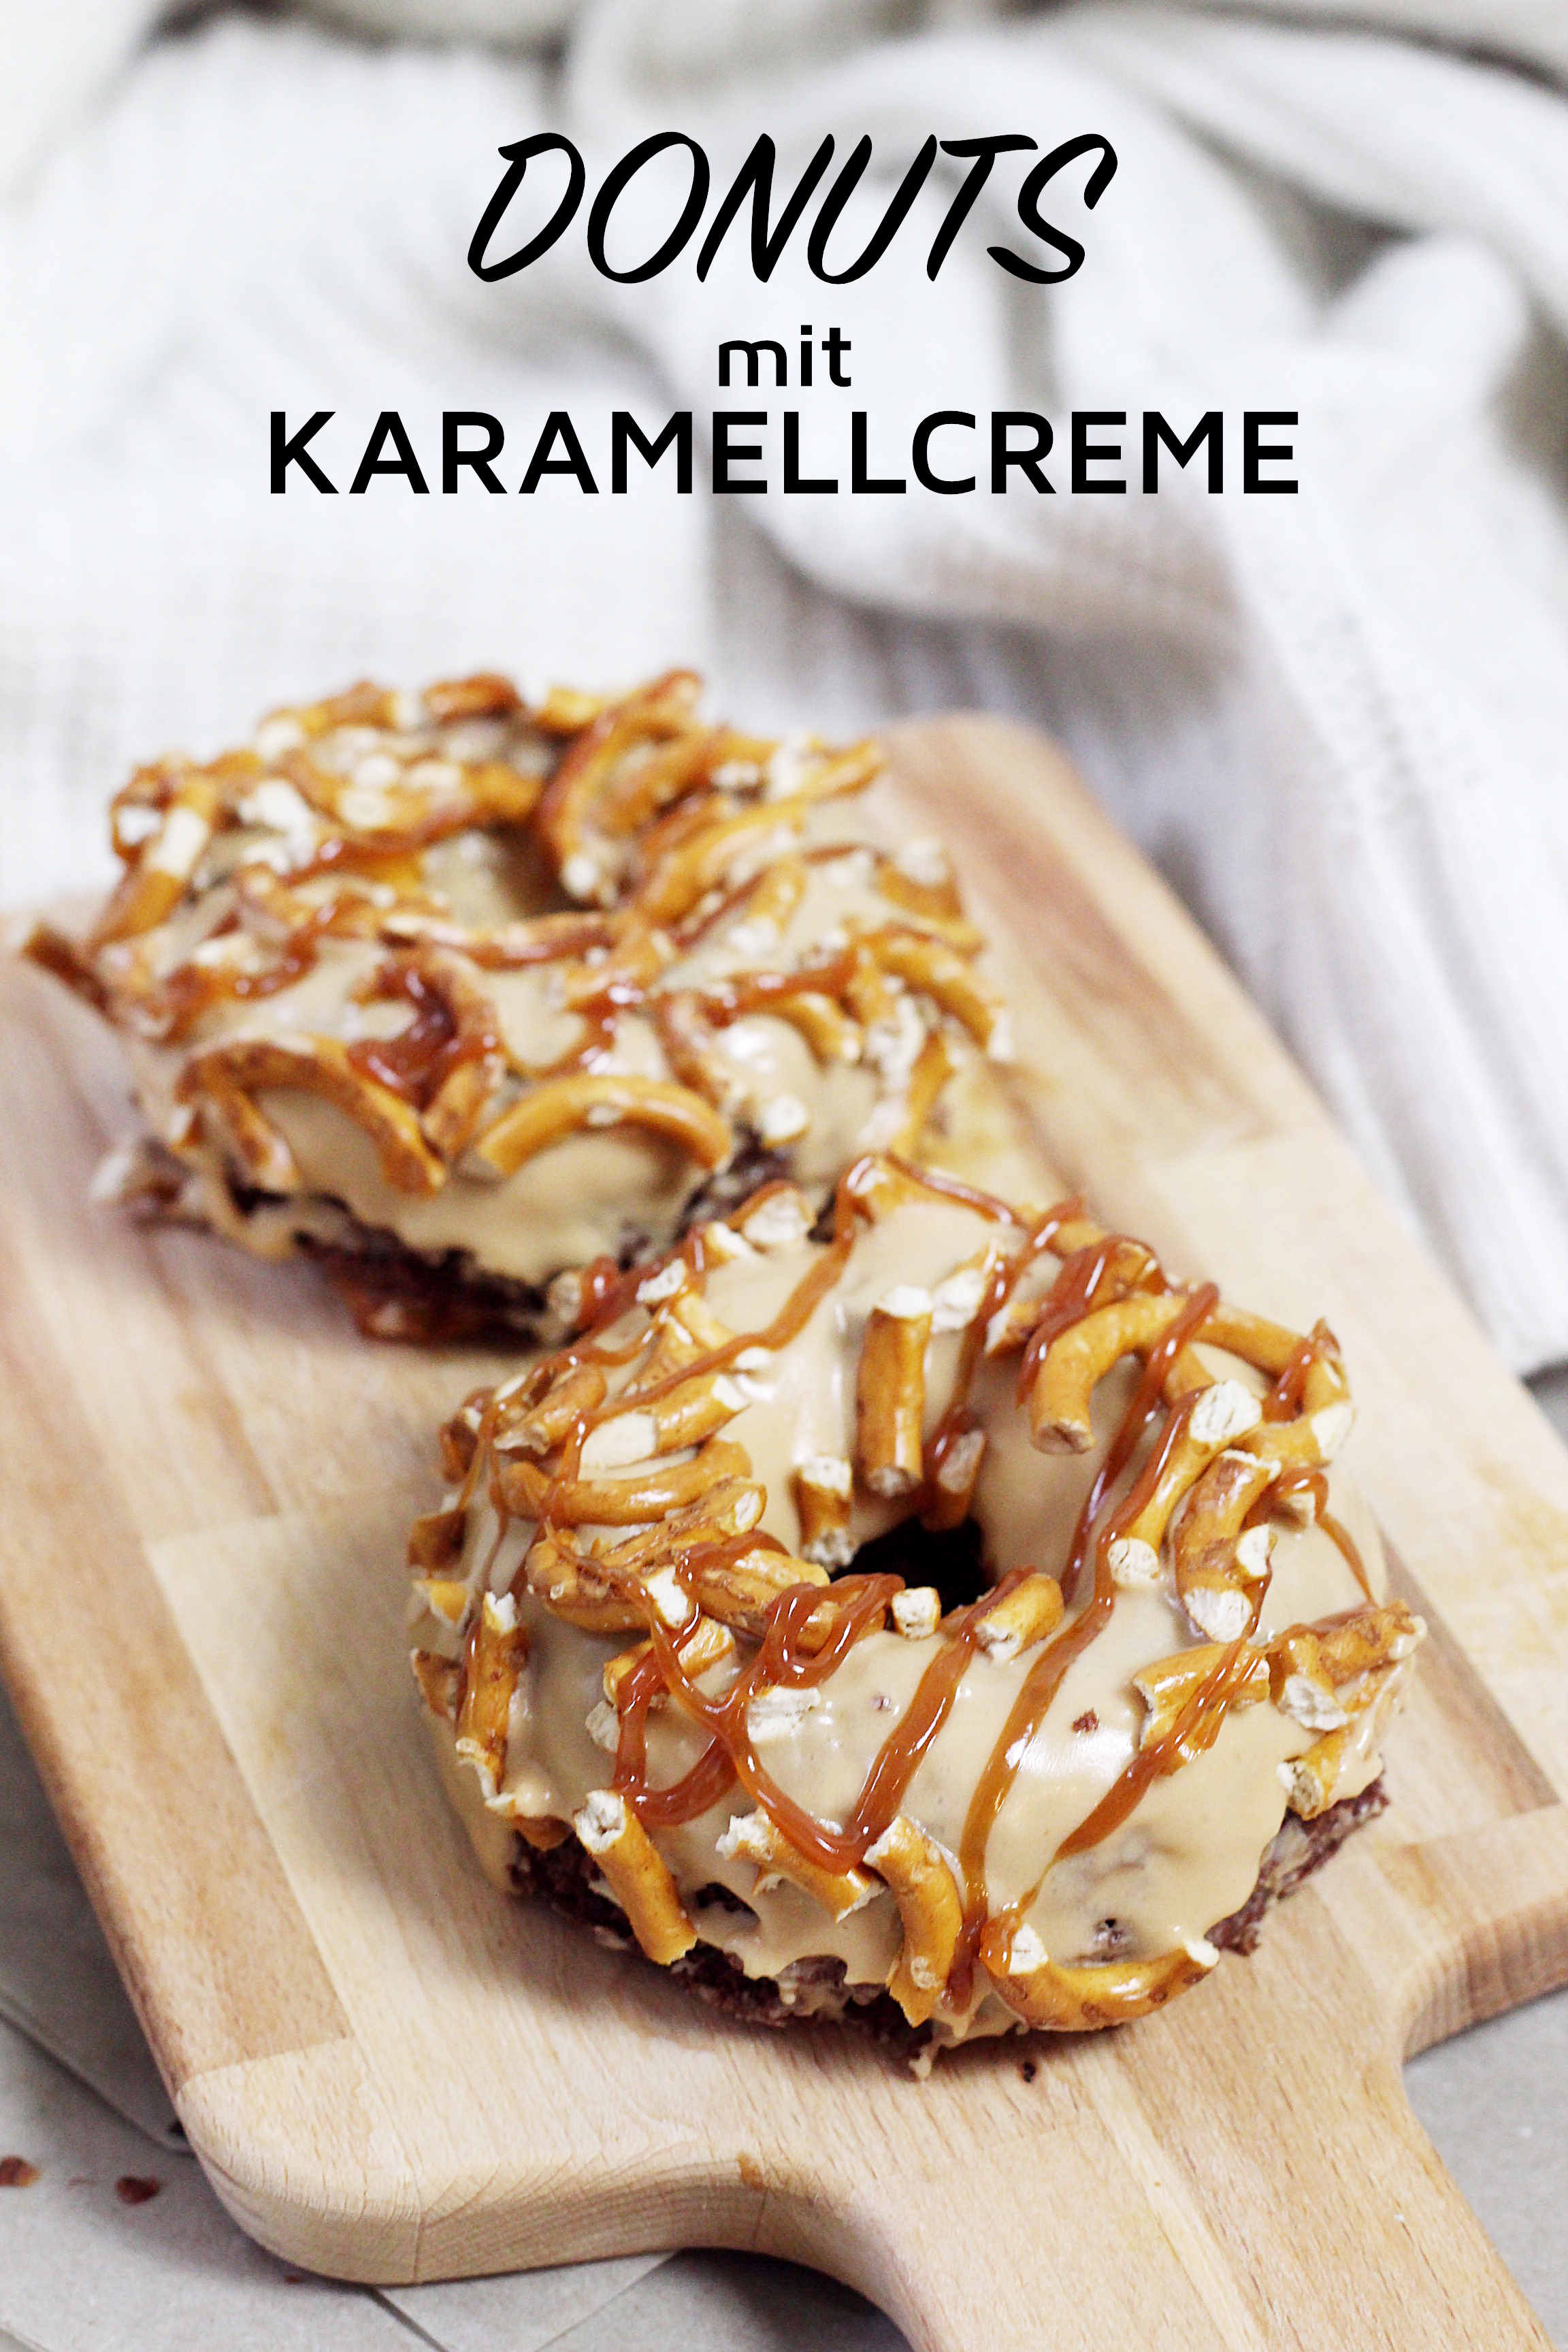 donuts-mit-karamellcreme-backen-rezept-diy-blog